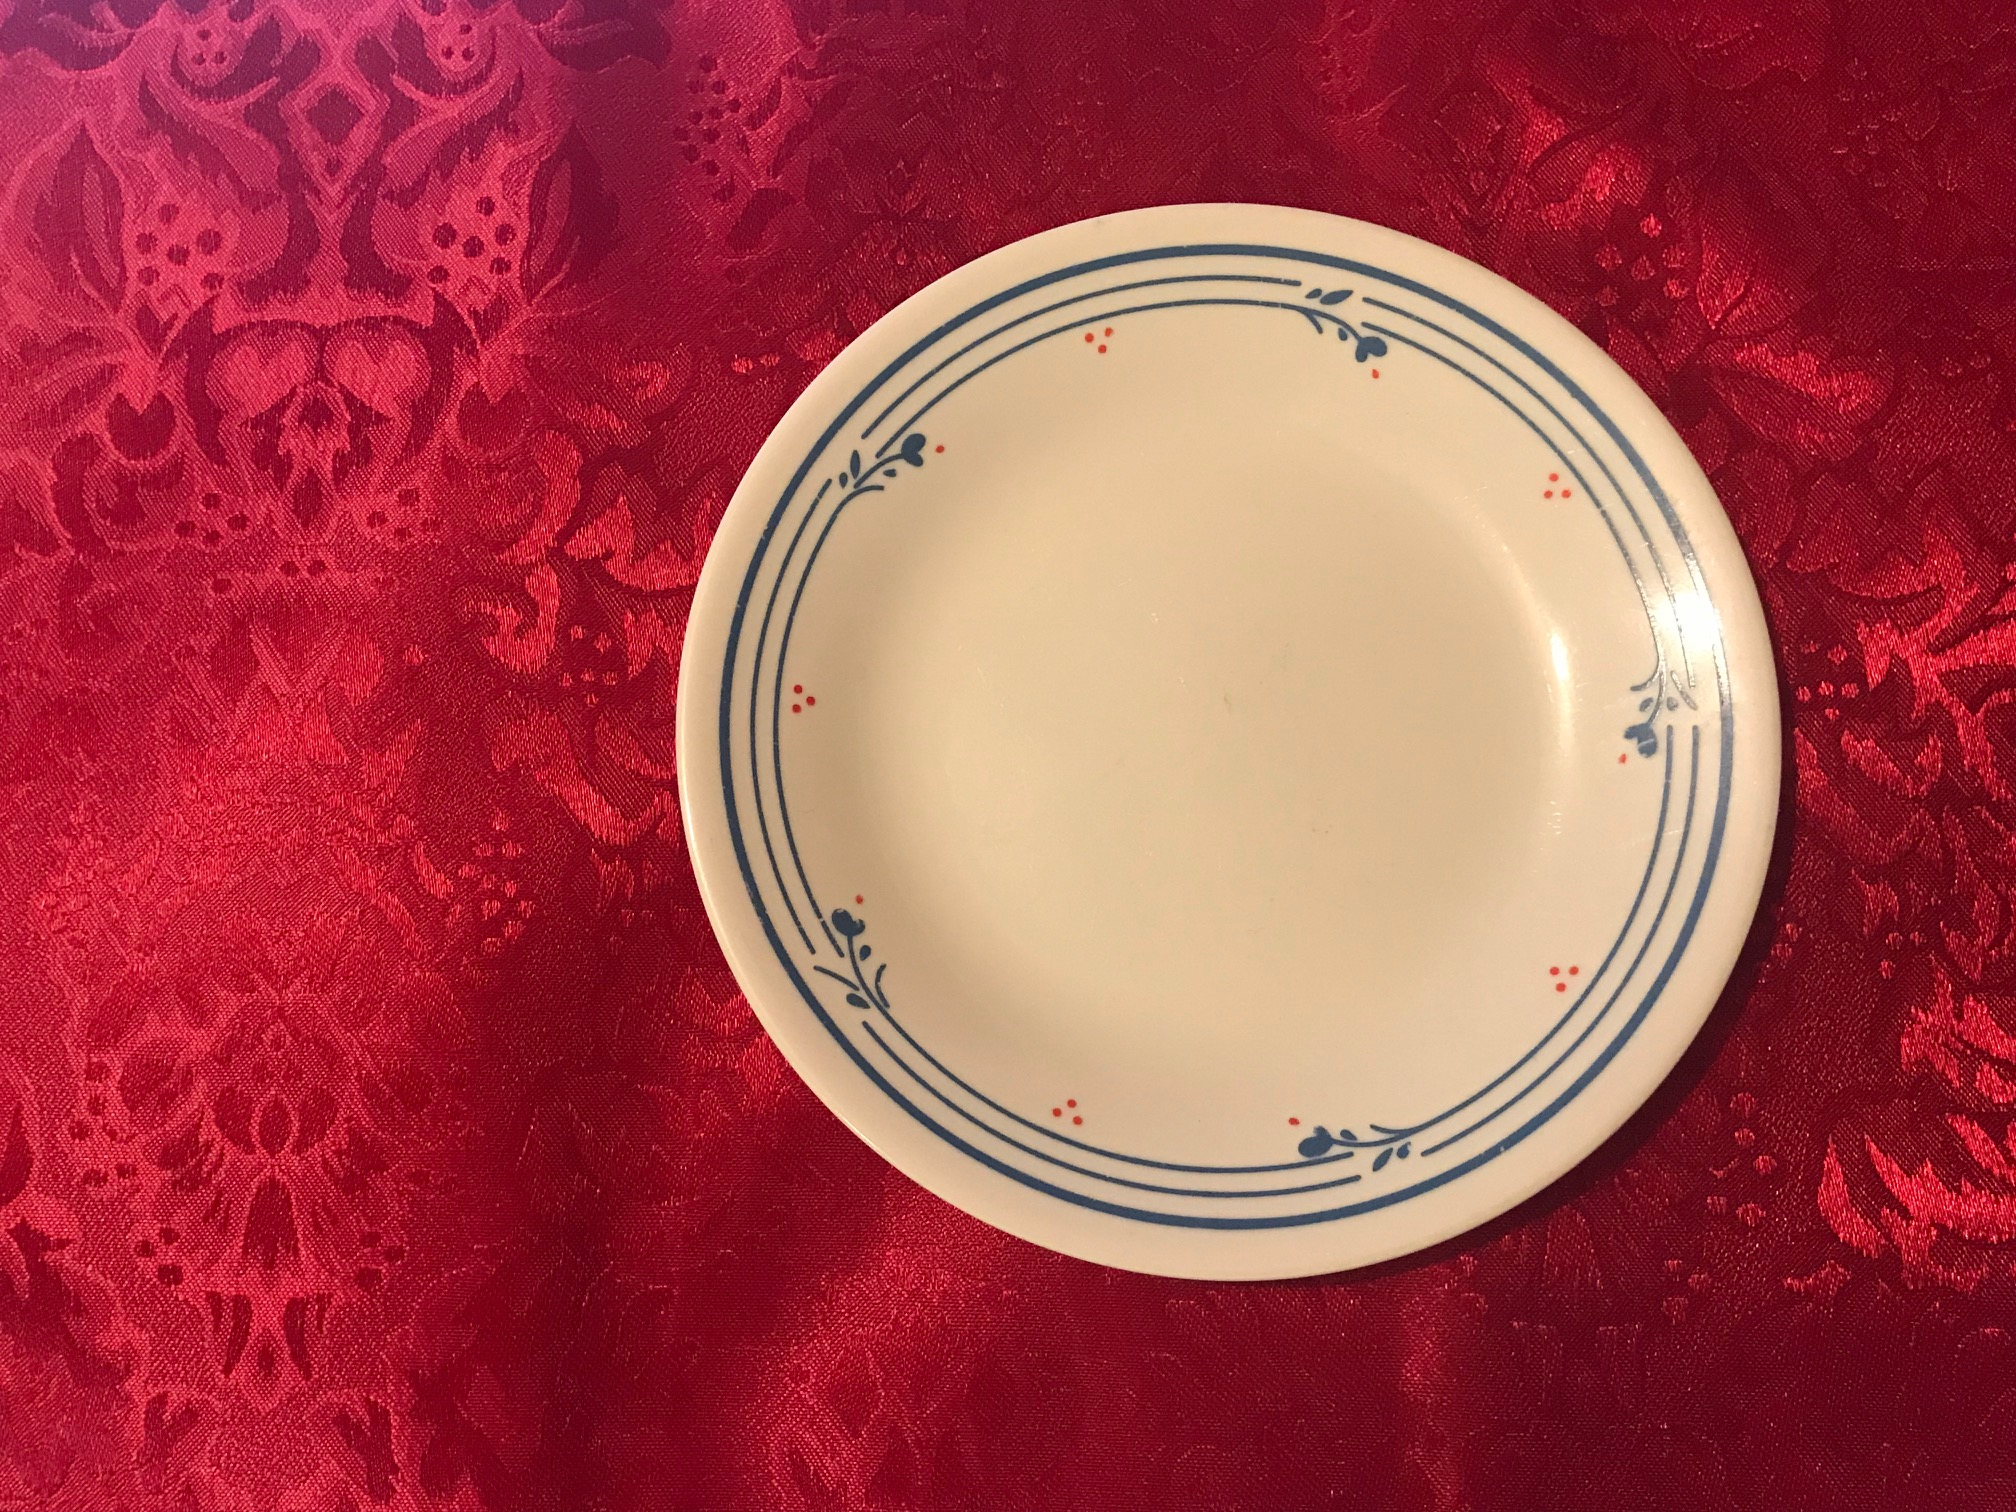 Small Cream Corelle Plate With Blue Floral Border & Red Berries: 7,450 ppm Lead + Cadmium